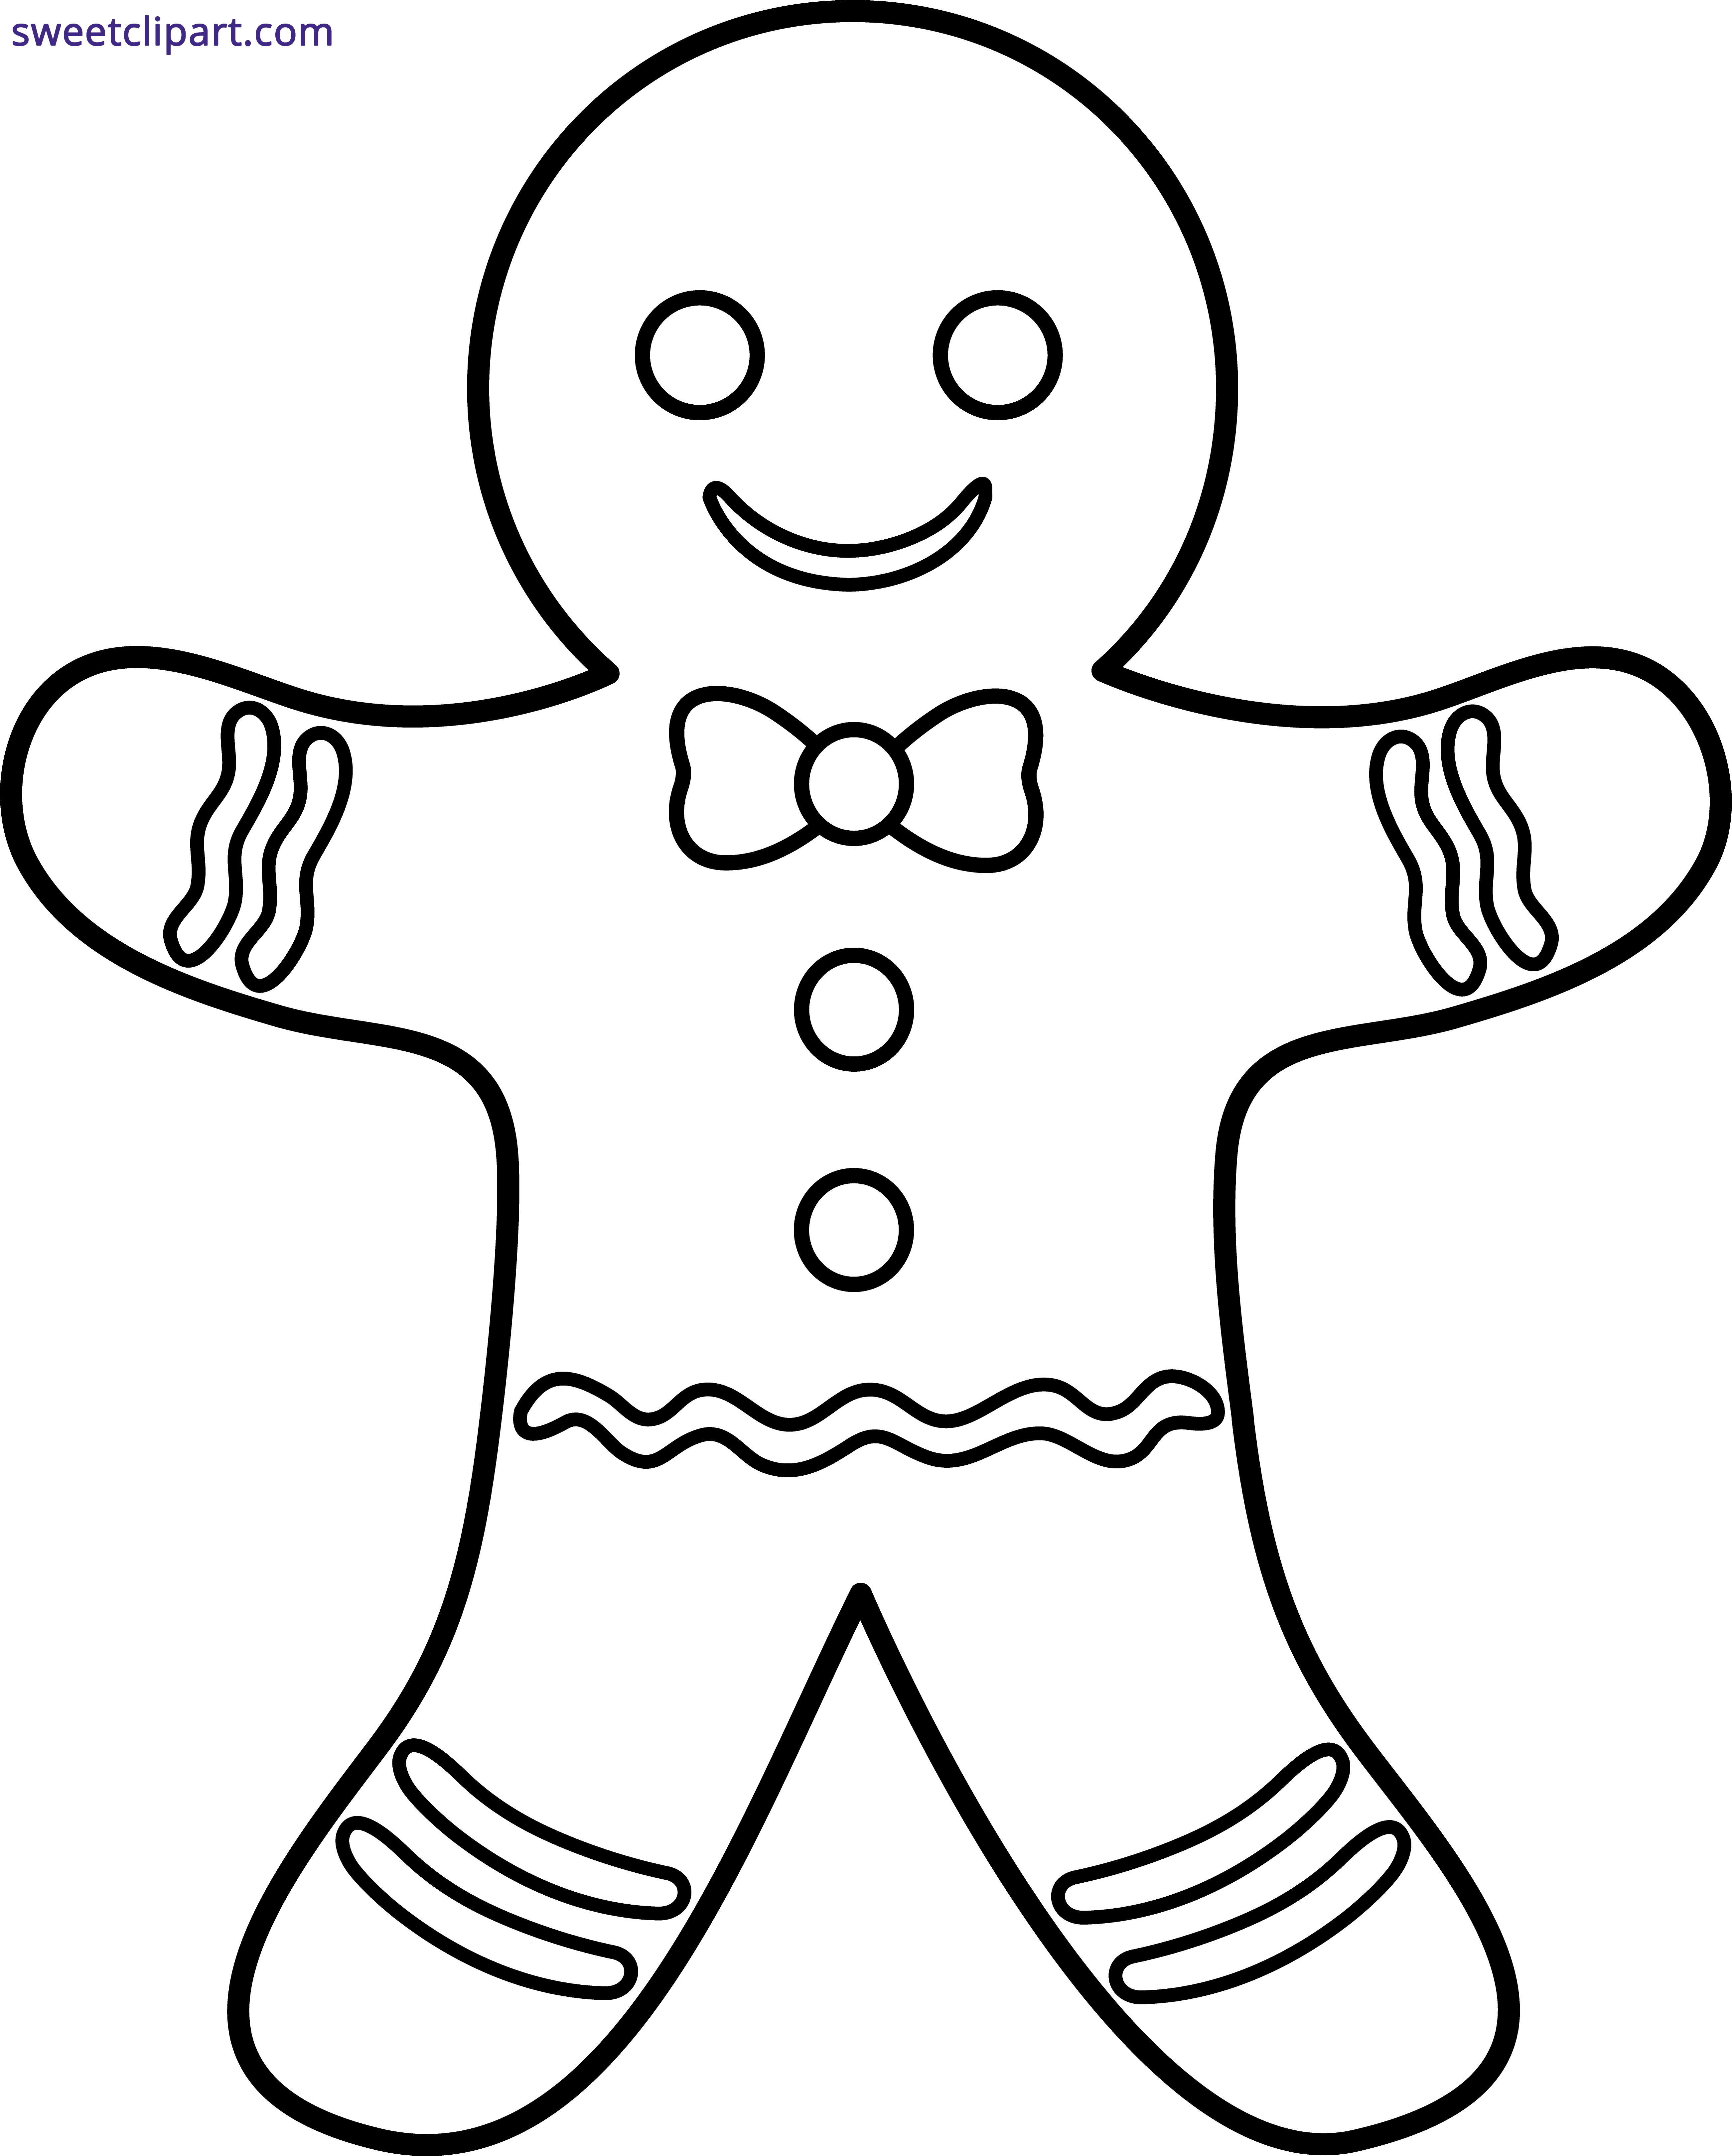 Gingerbread Man Outline Clipart Sweet Gingerbread Man Coloring Page Christmas Coloring Pages Coloring Pages Inspirational